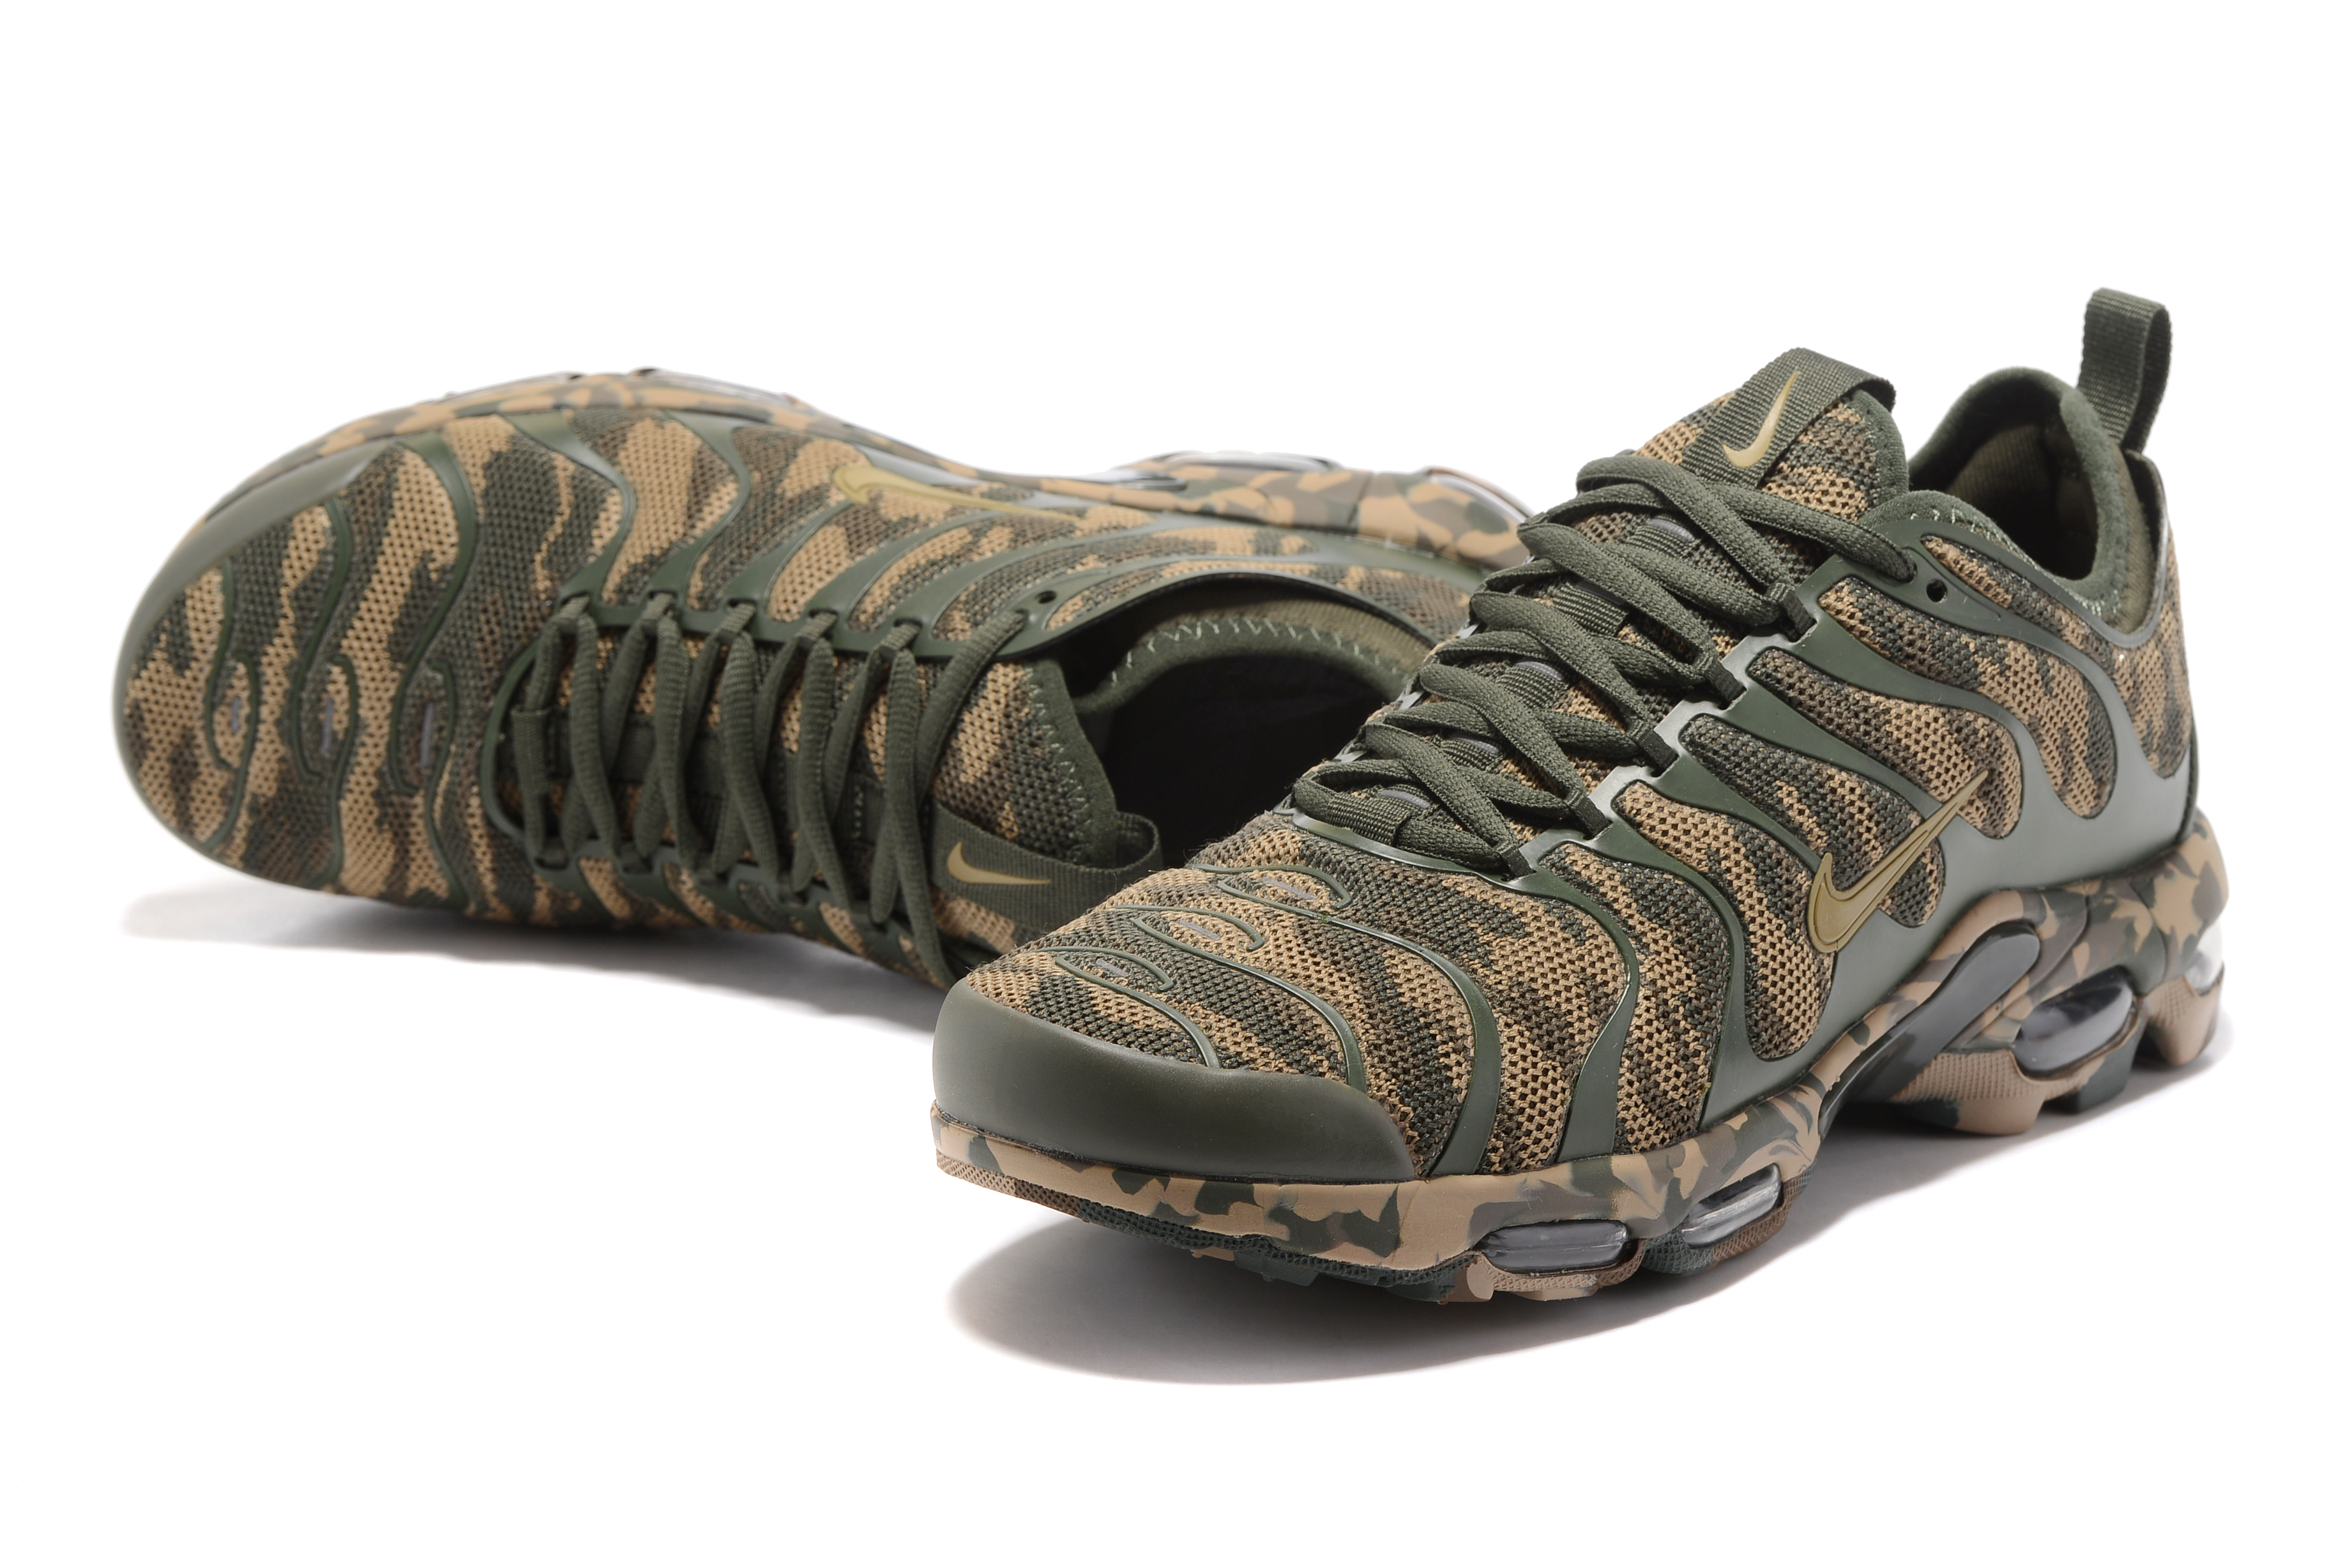 Nike Air Max Plus TN Camo Green Shoes